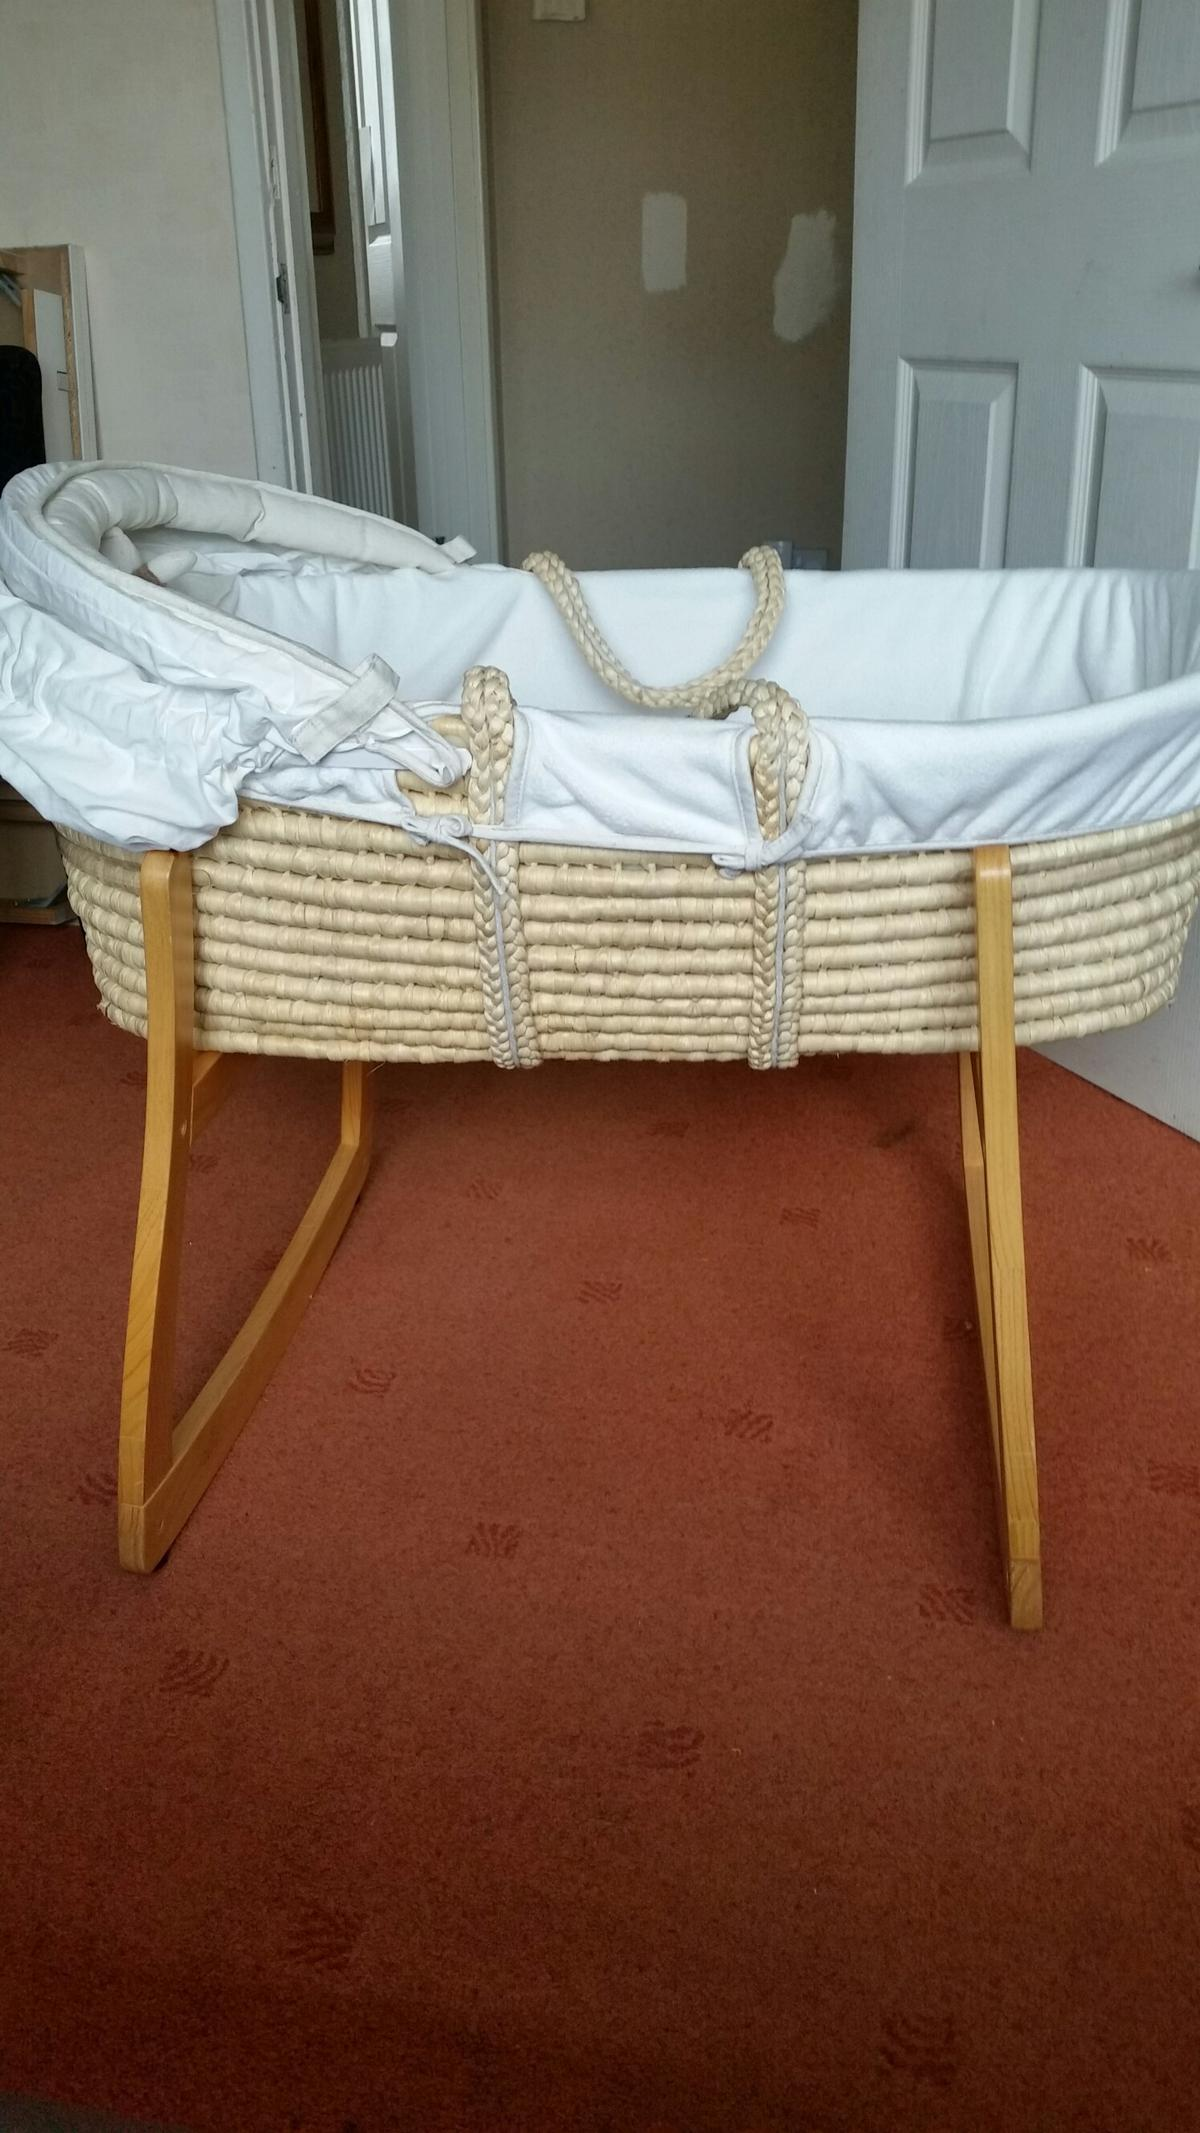 Moses Basket And Stand In Le18 Oadby